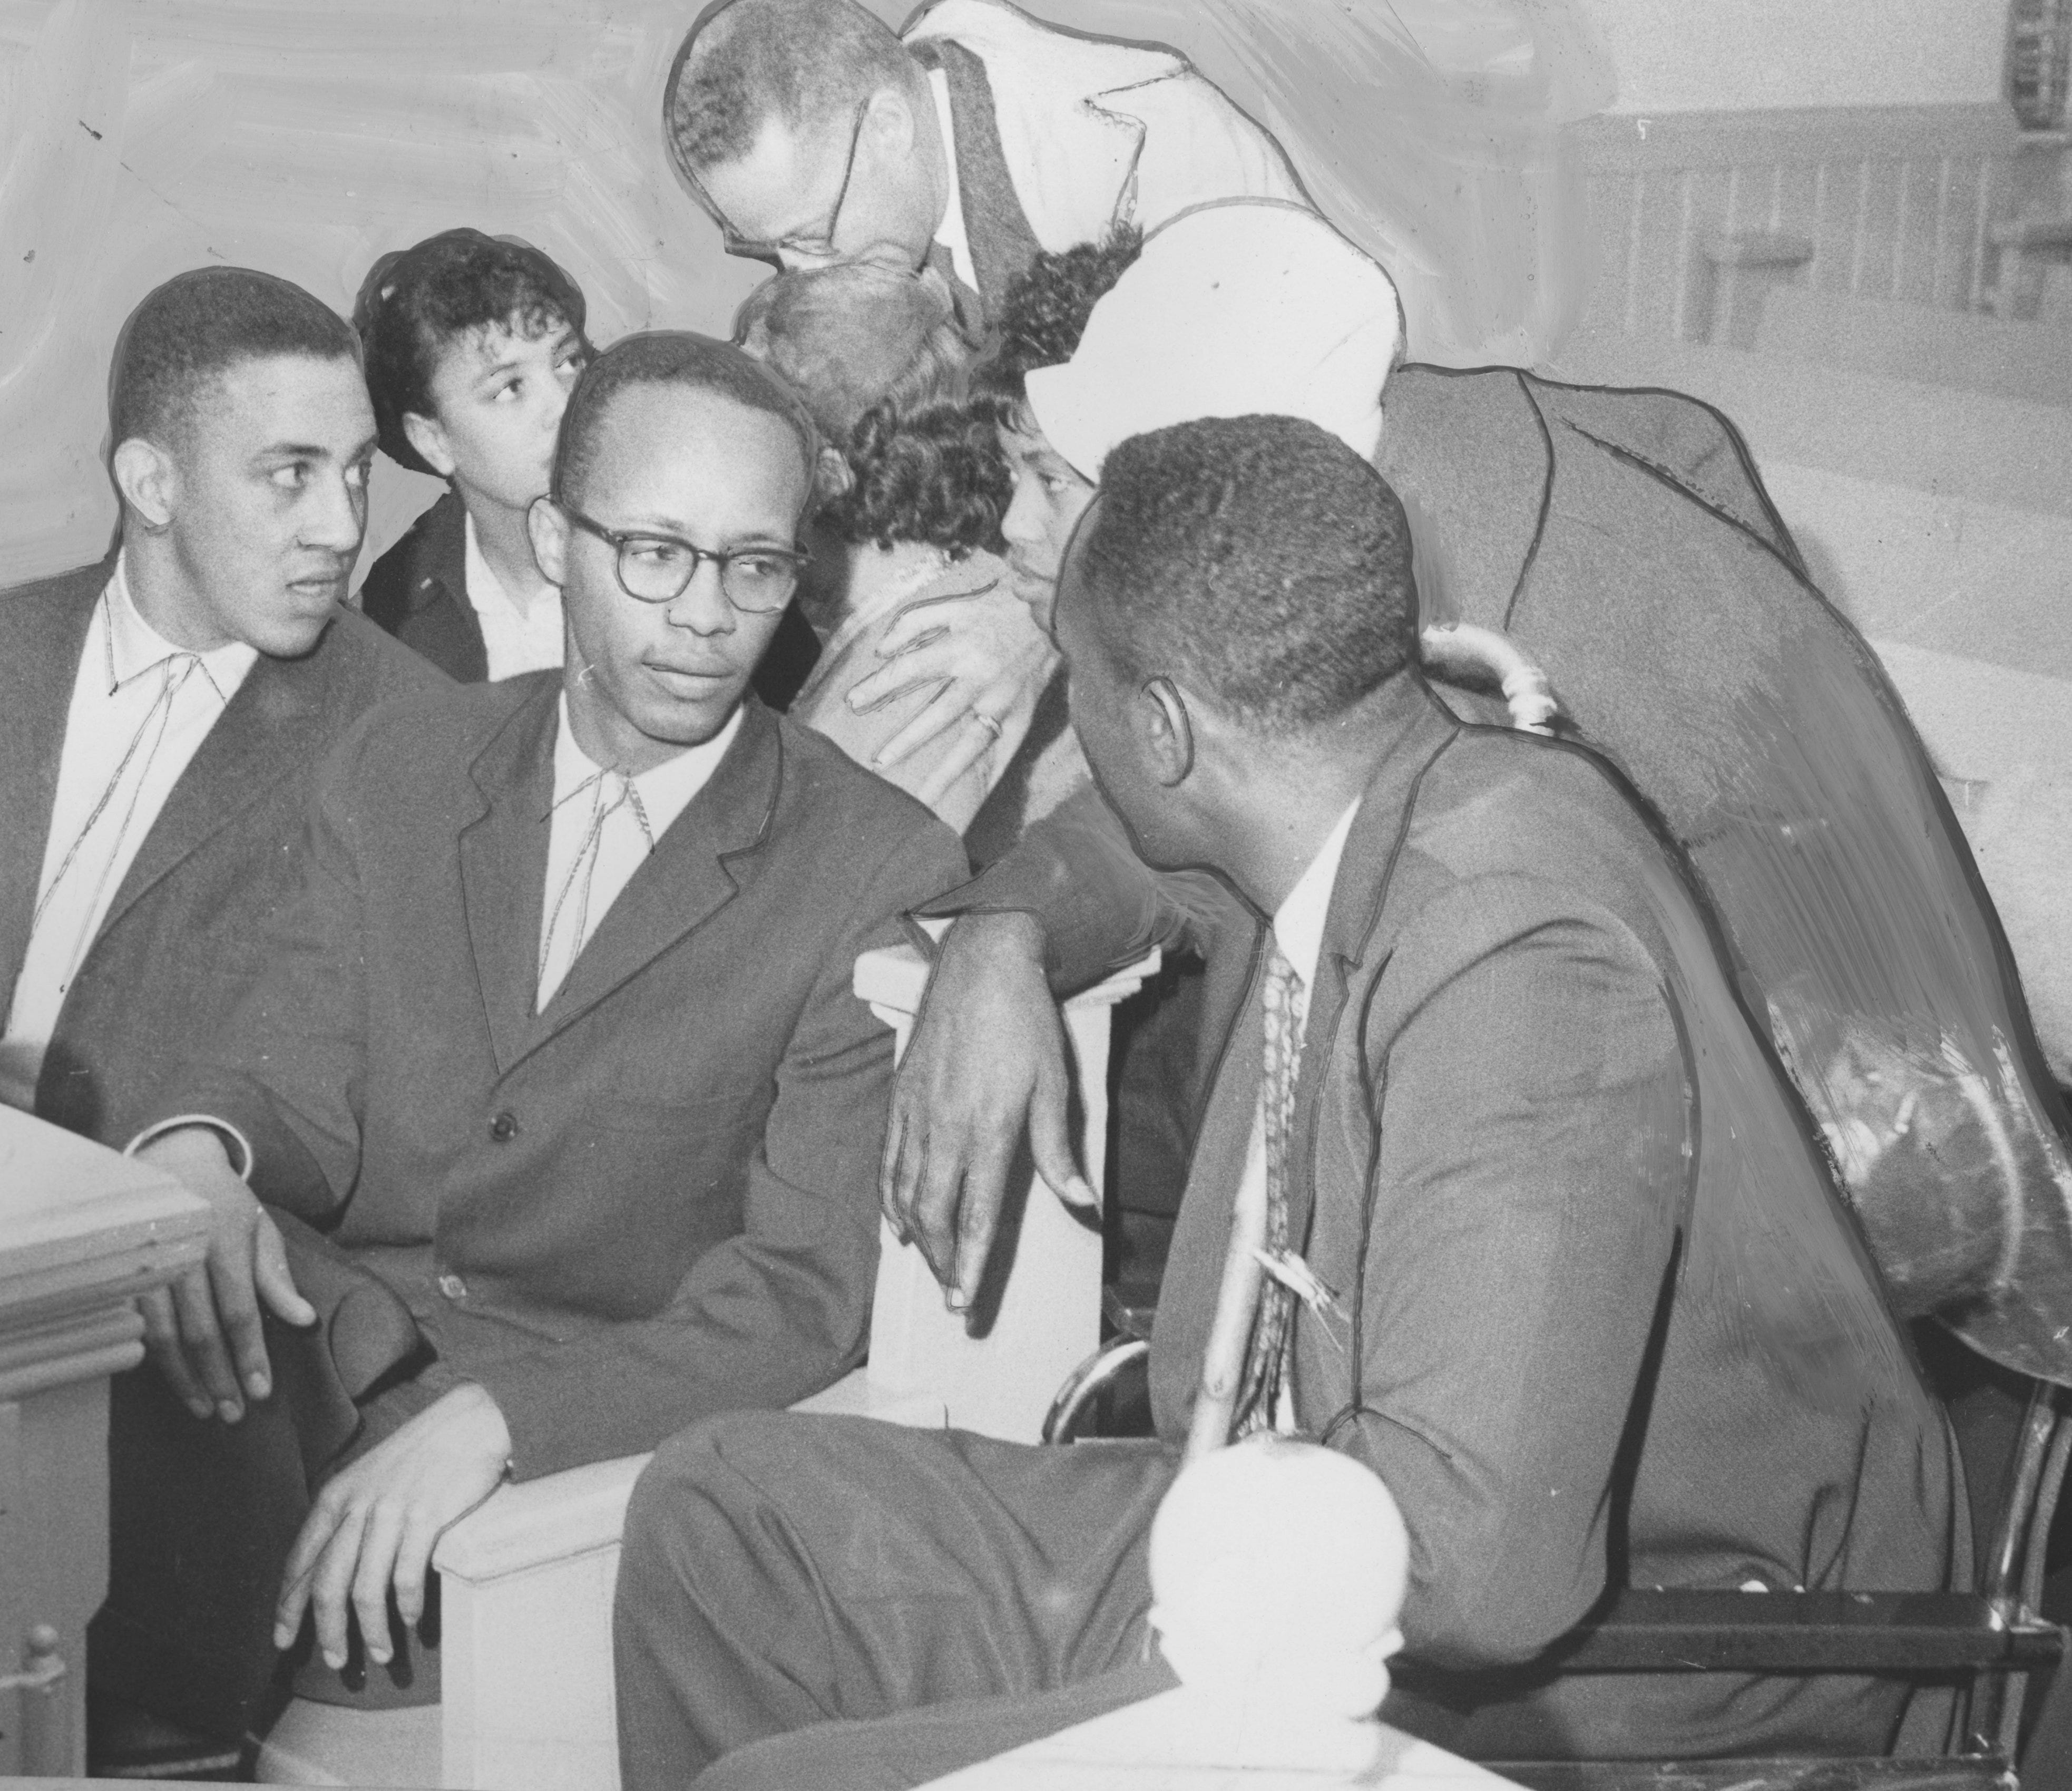 From left to right: Charles Sherrod, Joseph Jones, and the Rev. Ivory Cecil, president of the National Association for the Advancement of Colored People Rock Hill Branch, meet in a South Carolina courtroom to discuss strategy.